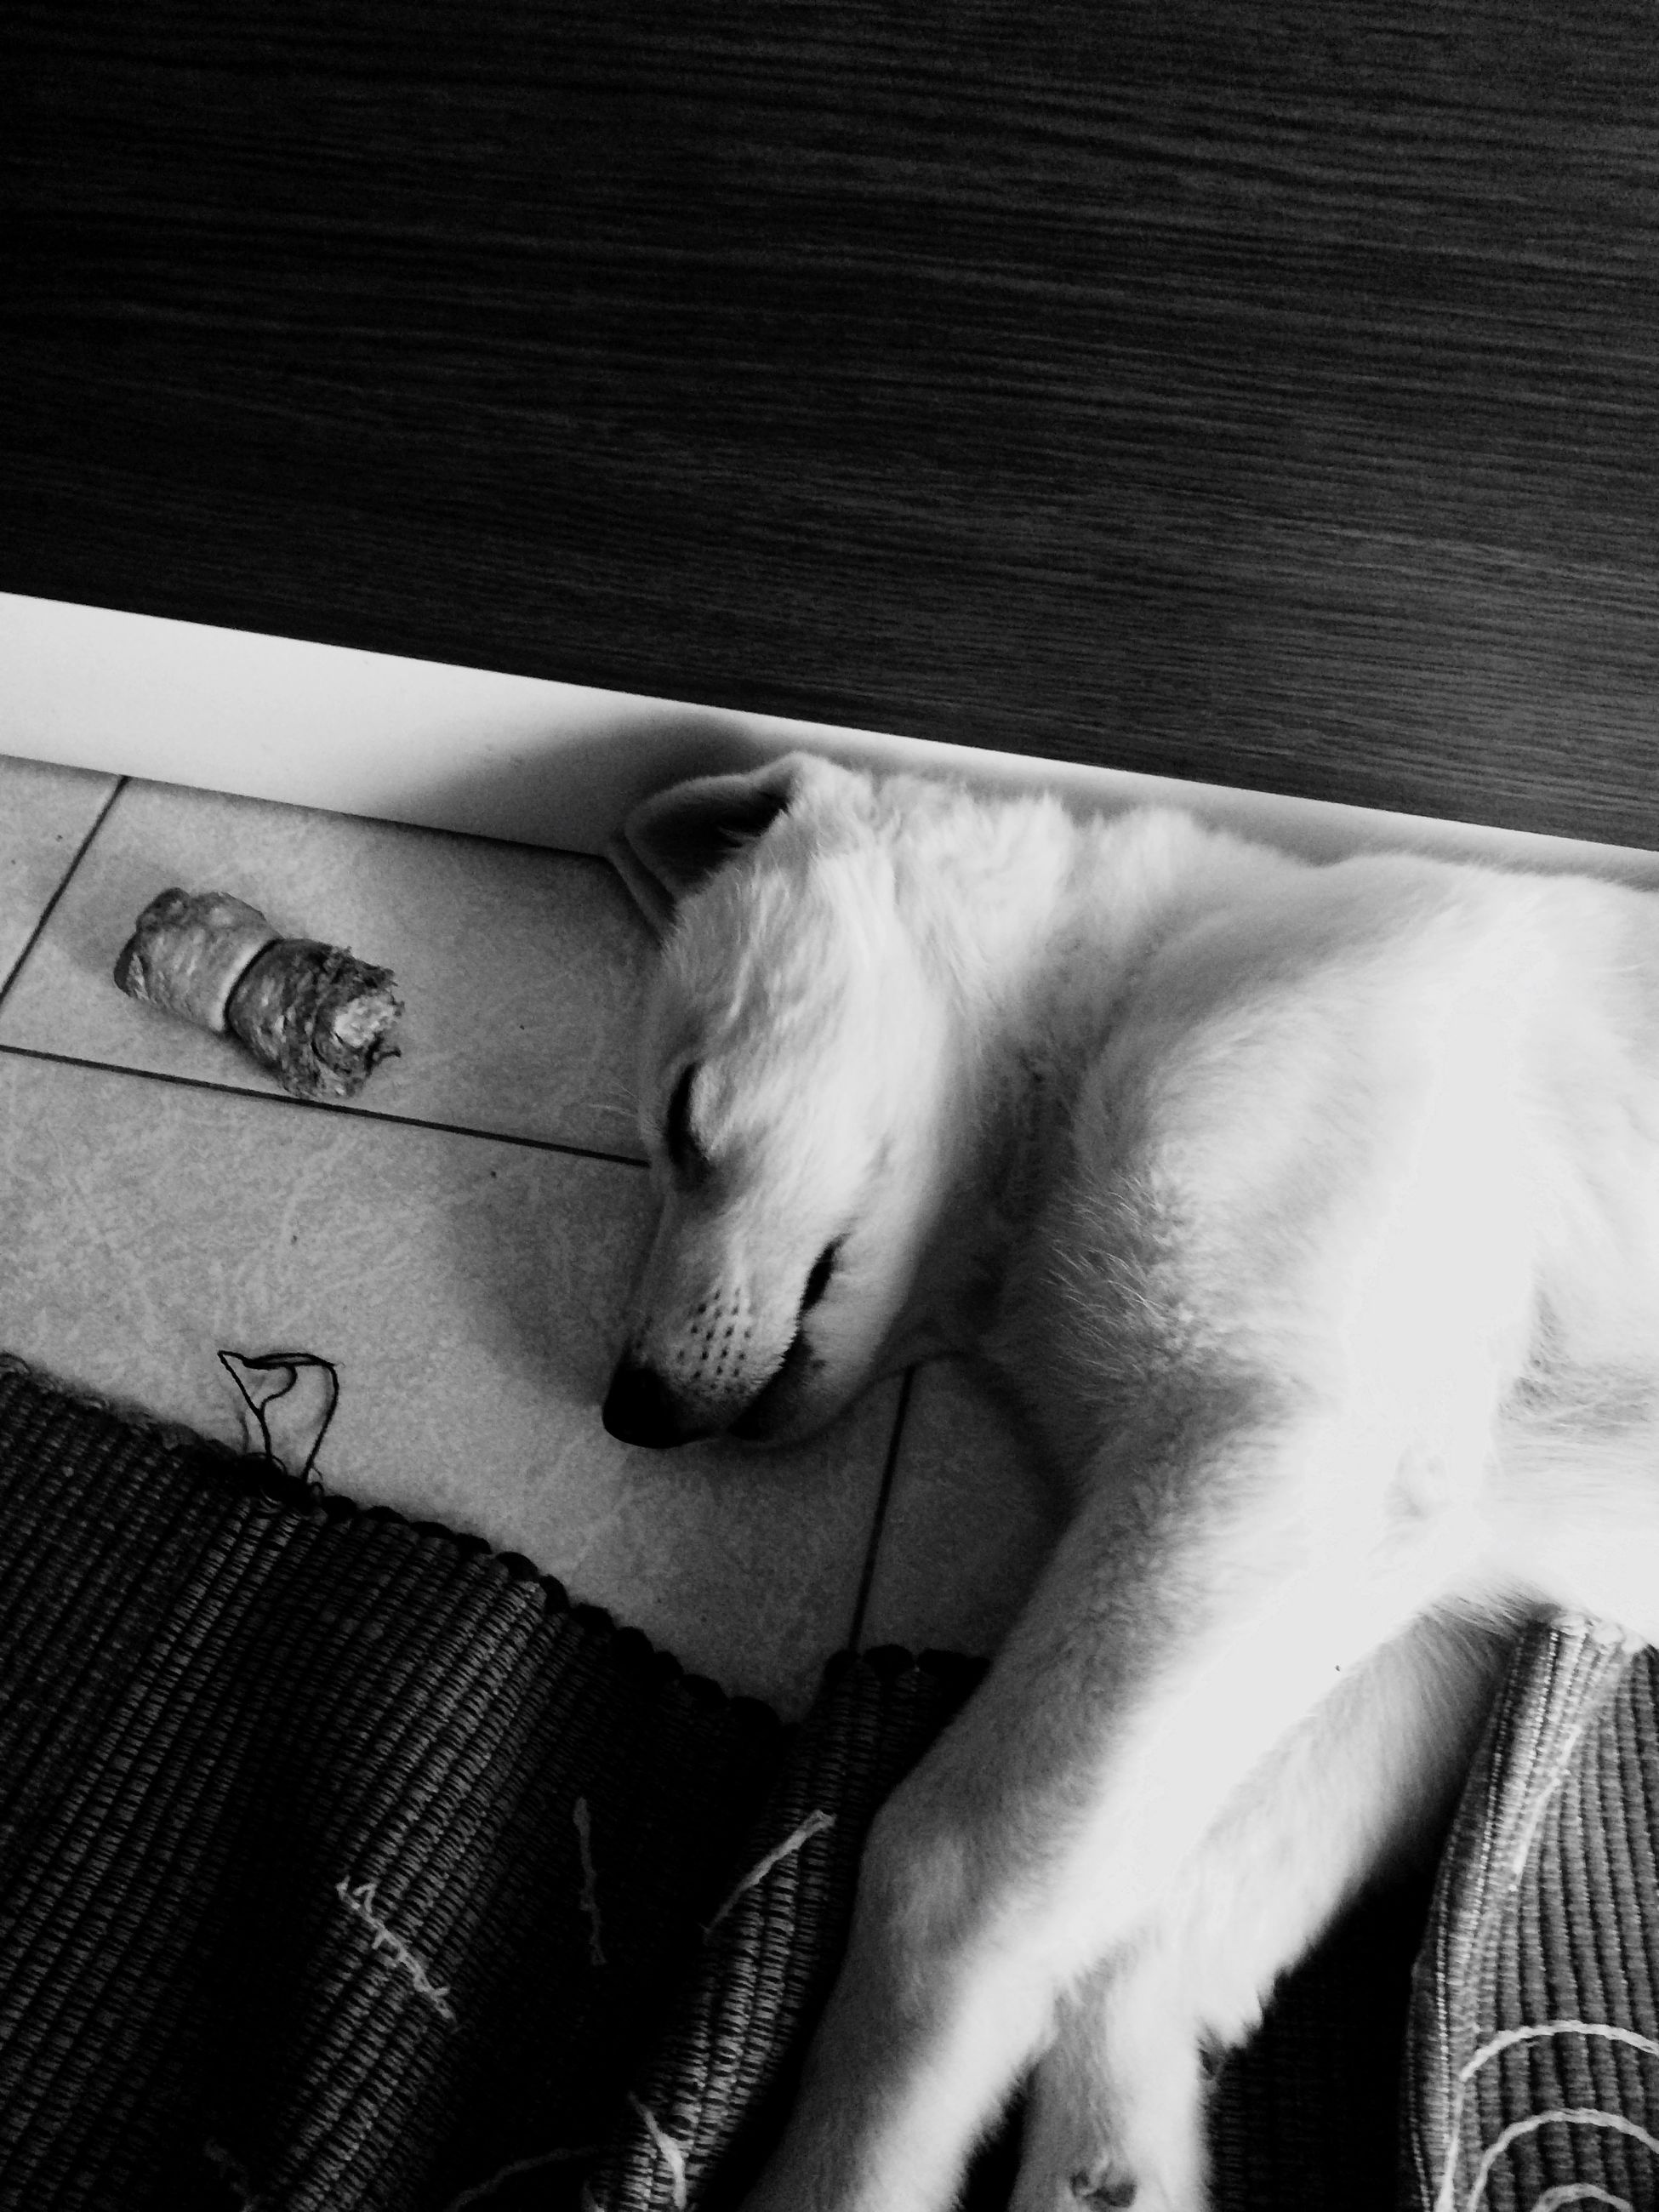 domestic animals, pets, one animal, mammal, animal themes, sleeping, indoors, relaxation, domestic cat, cat, resting, lying down, high angle view, feline, bed, eyes closed, dog, close-up, no people, comfortable